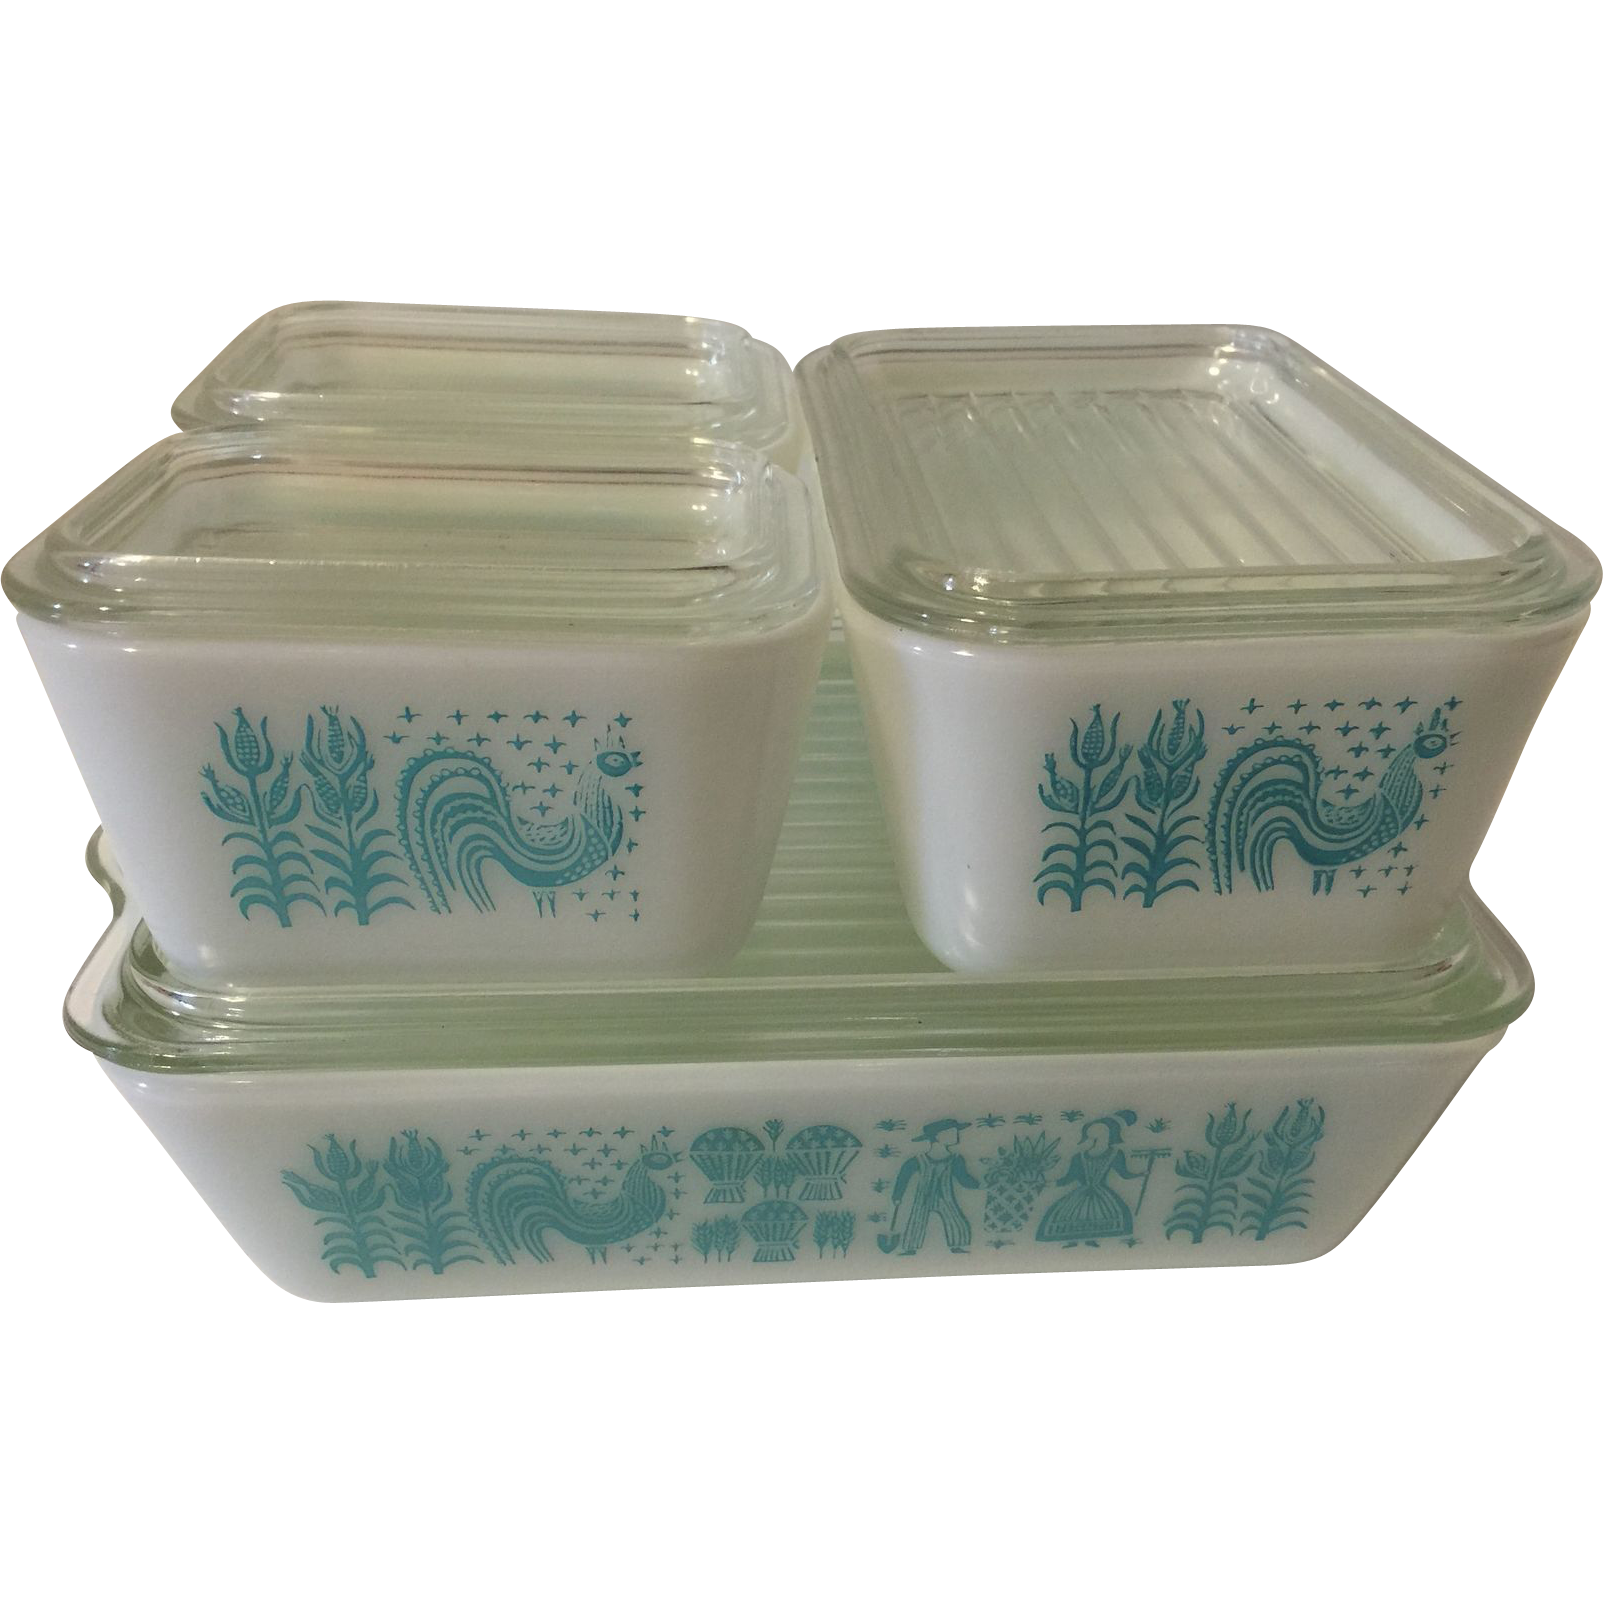 vintage pyrex 4 piece refrigerator ovenware dishes turquoise sold on ruby lane. Black Bedroom Furniture Sets. Home Design Ideas